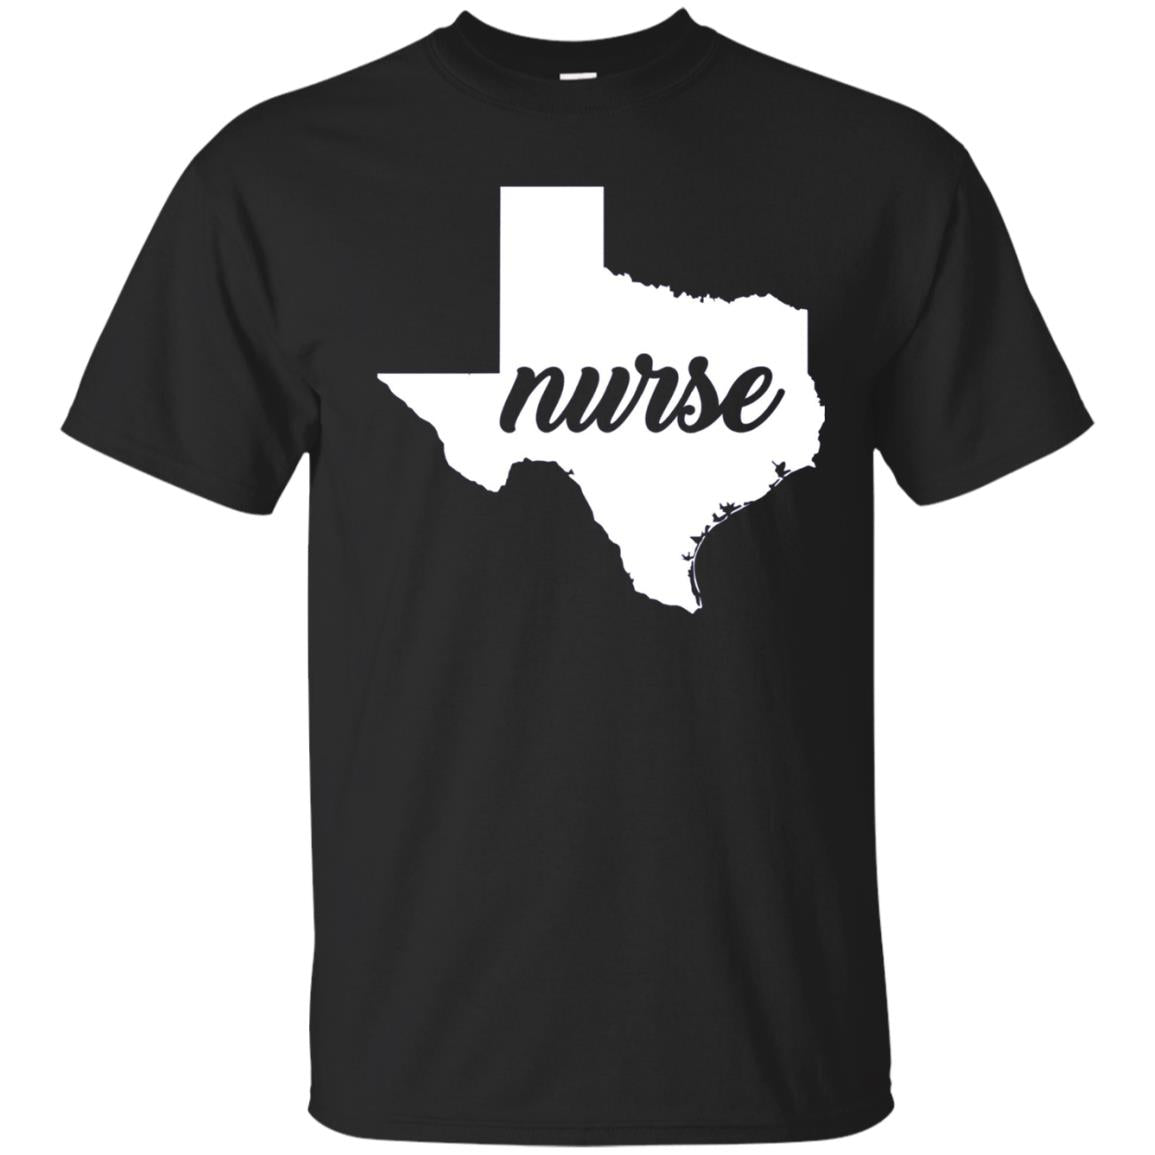 Texas Nurse T-Shirt